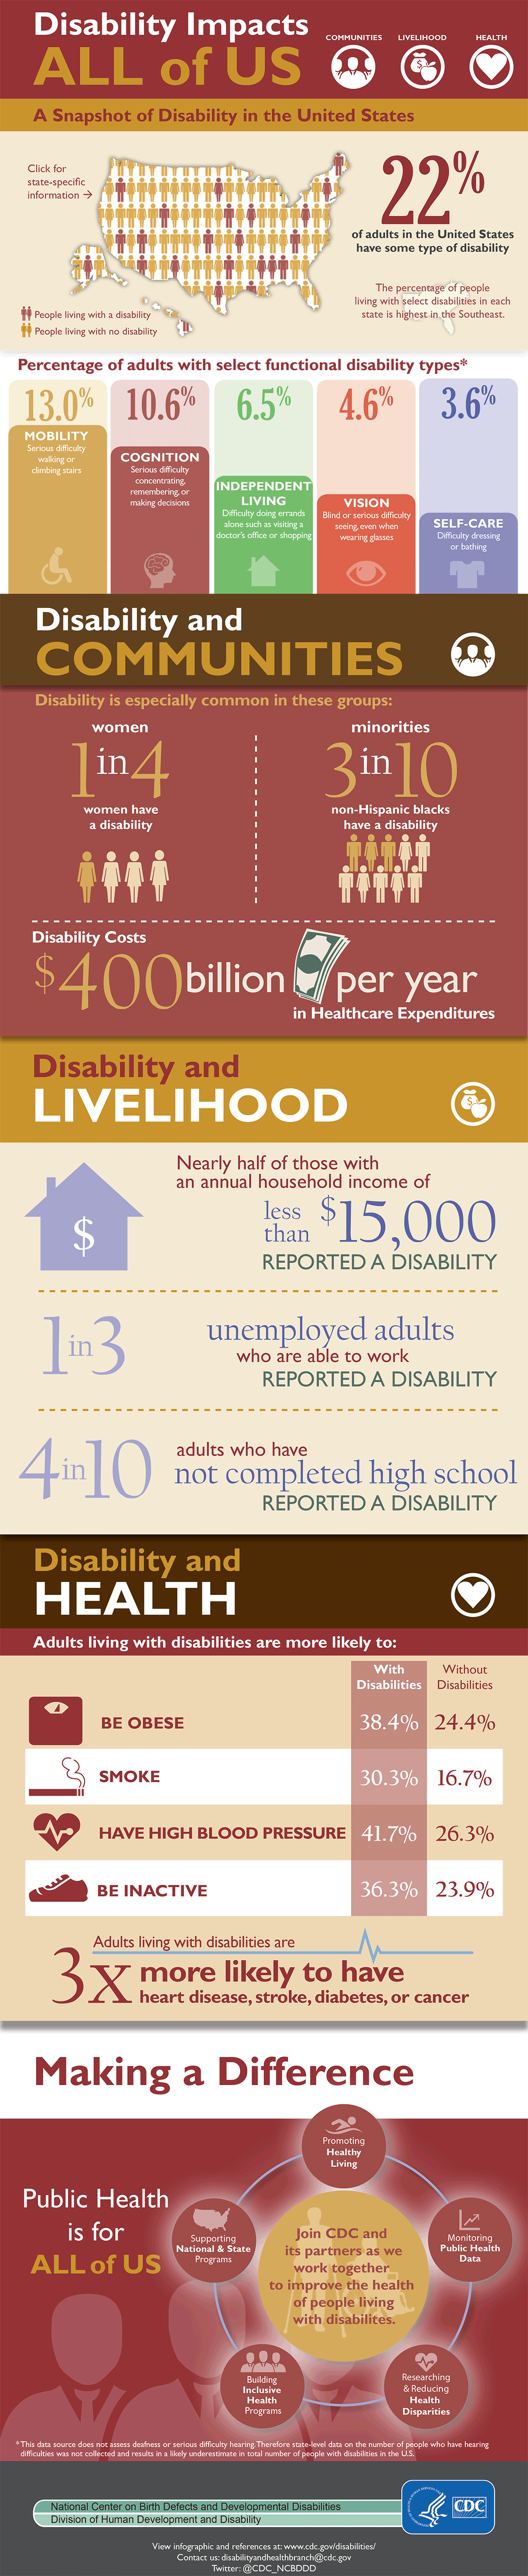 Disability impacts